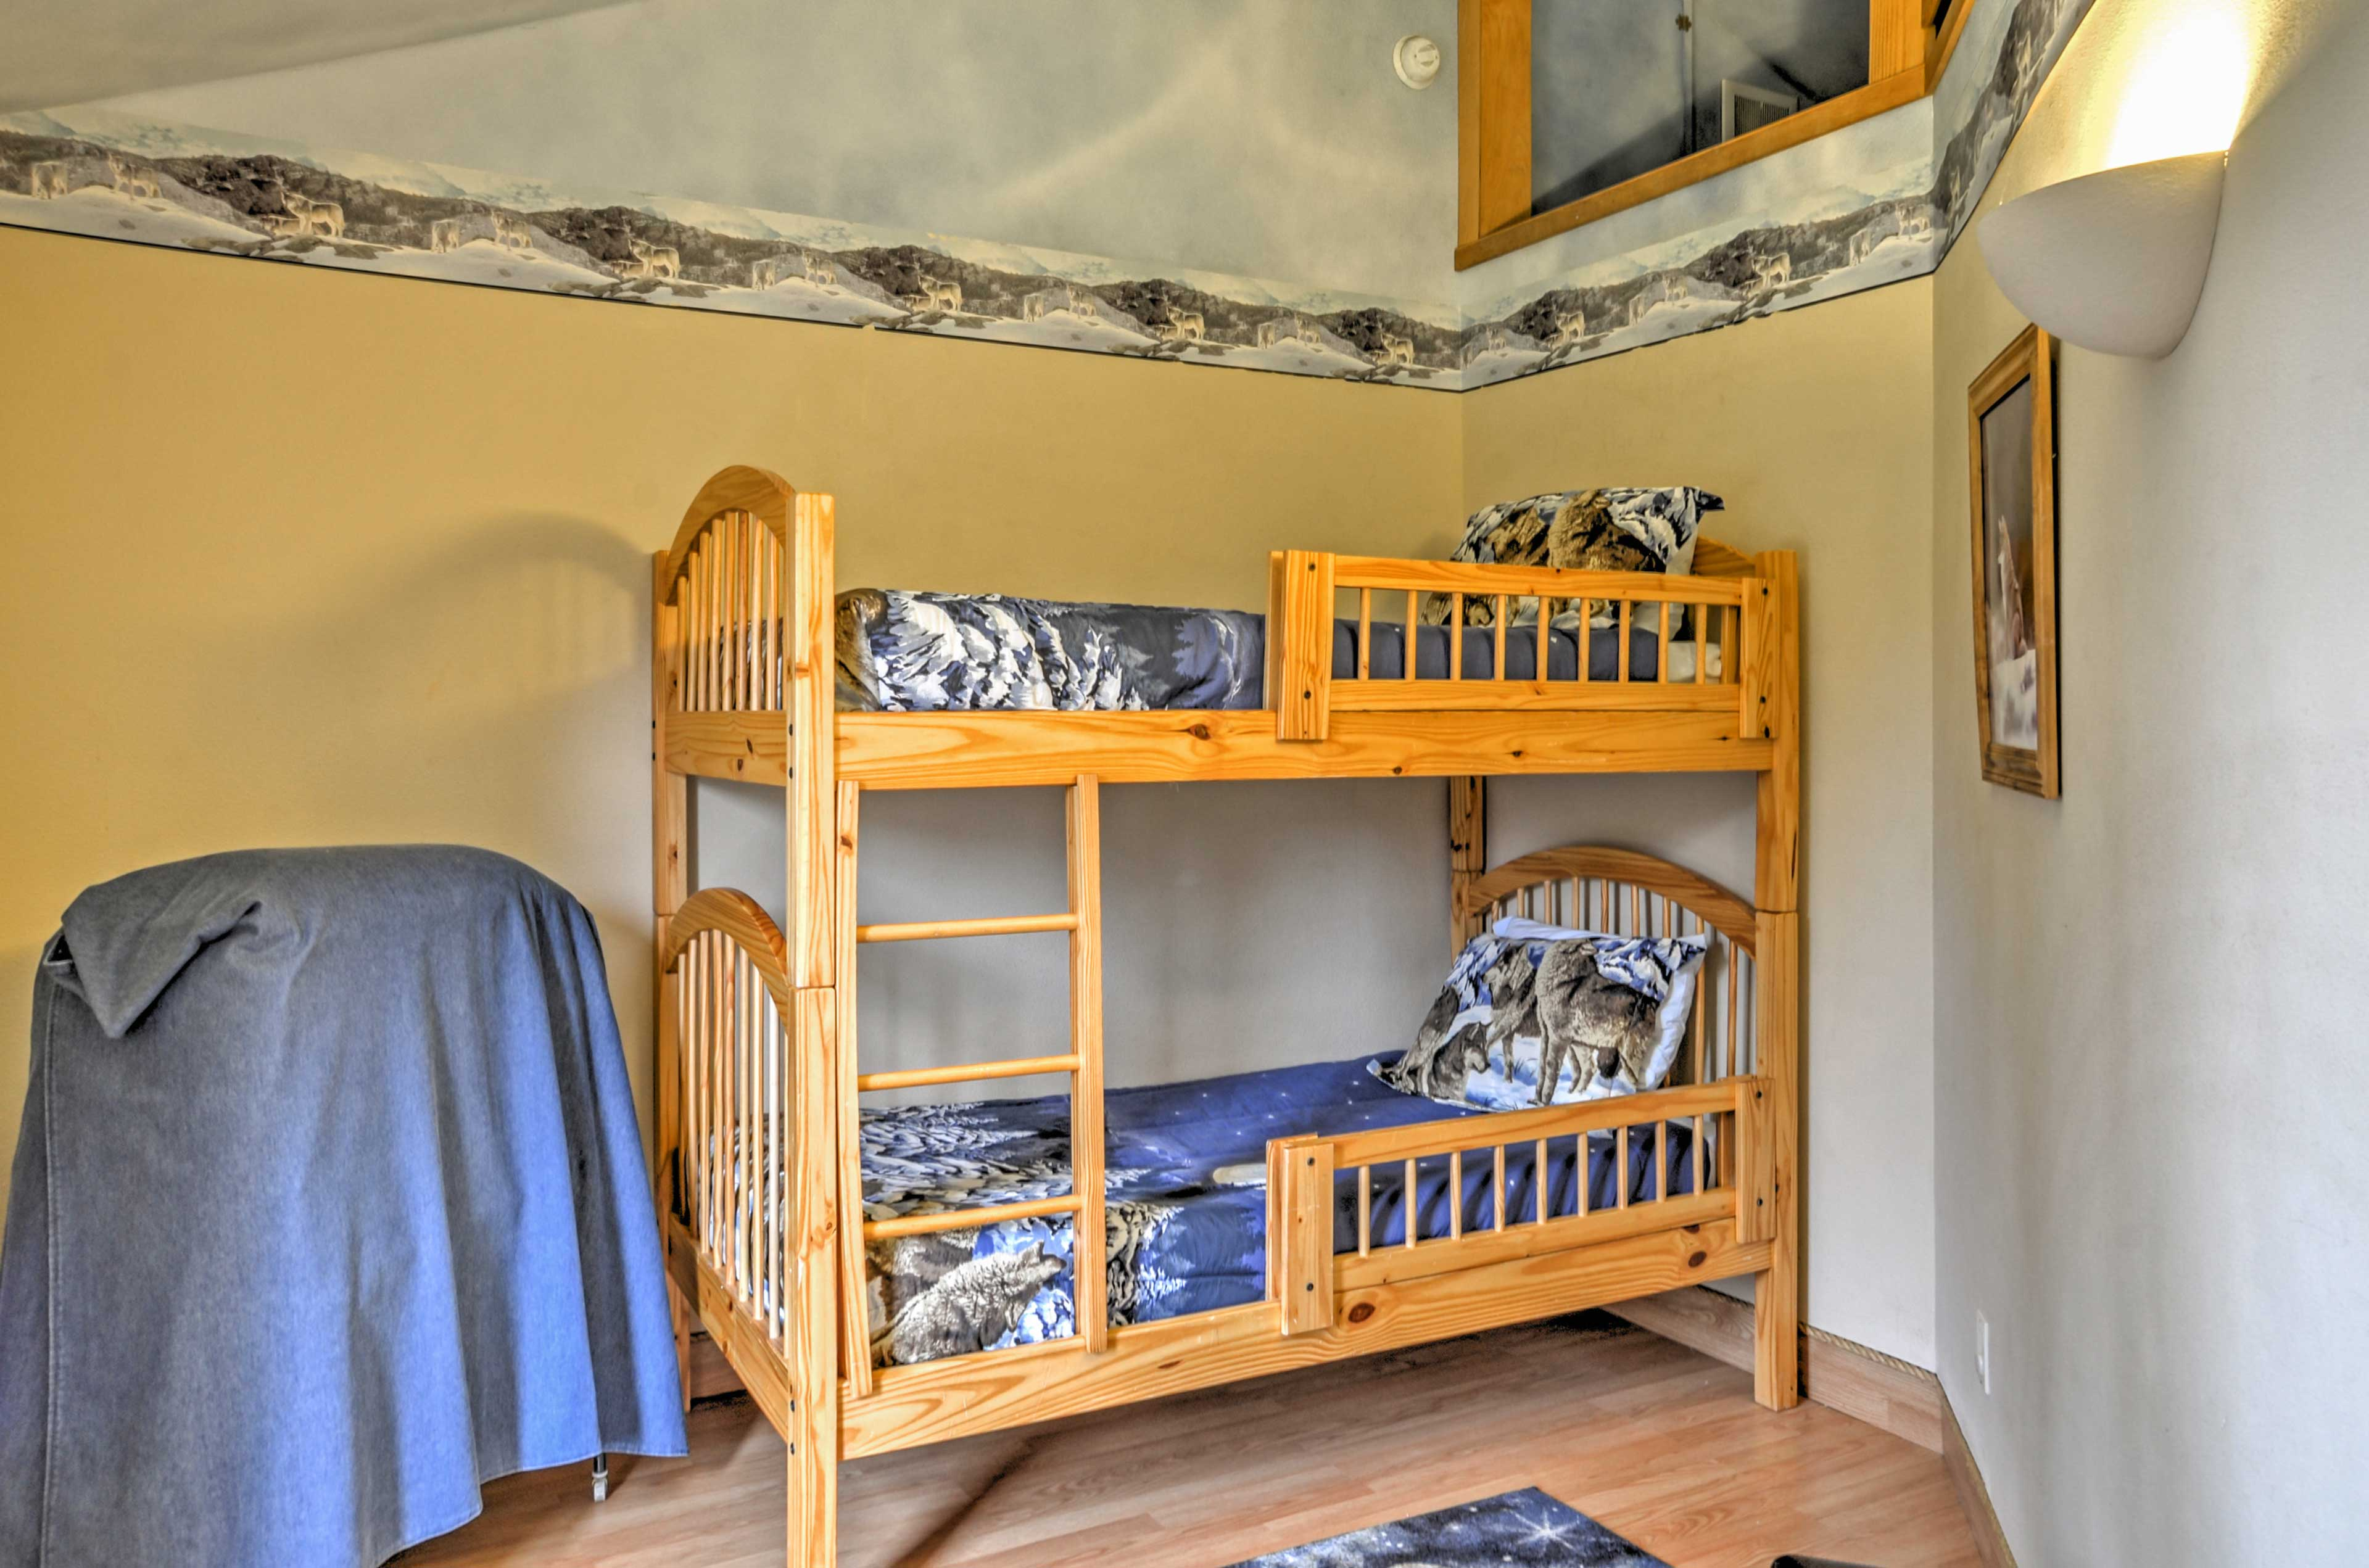 The kids will love the bunk room!